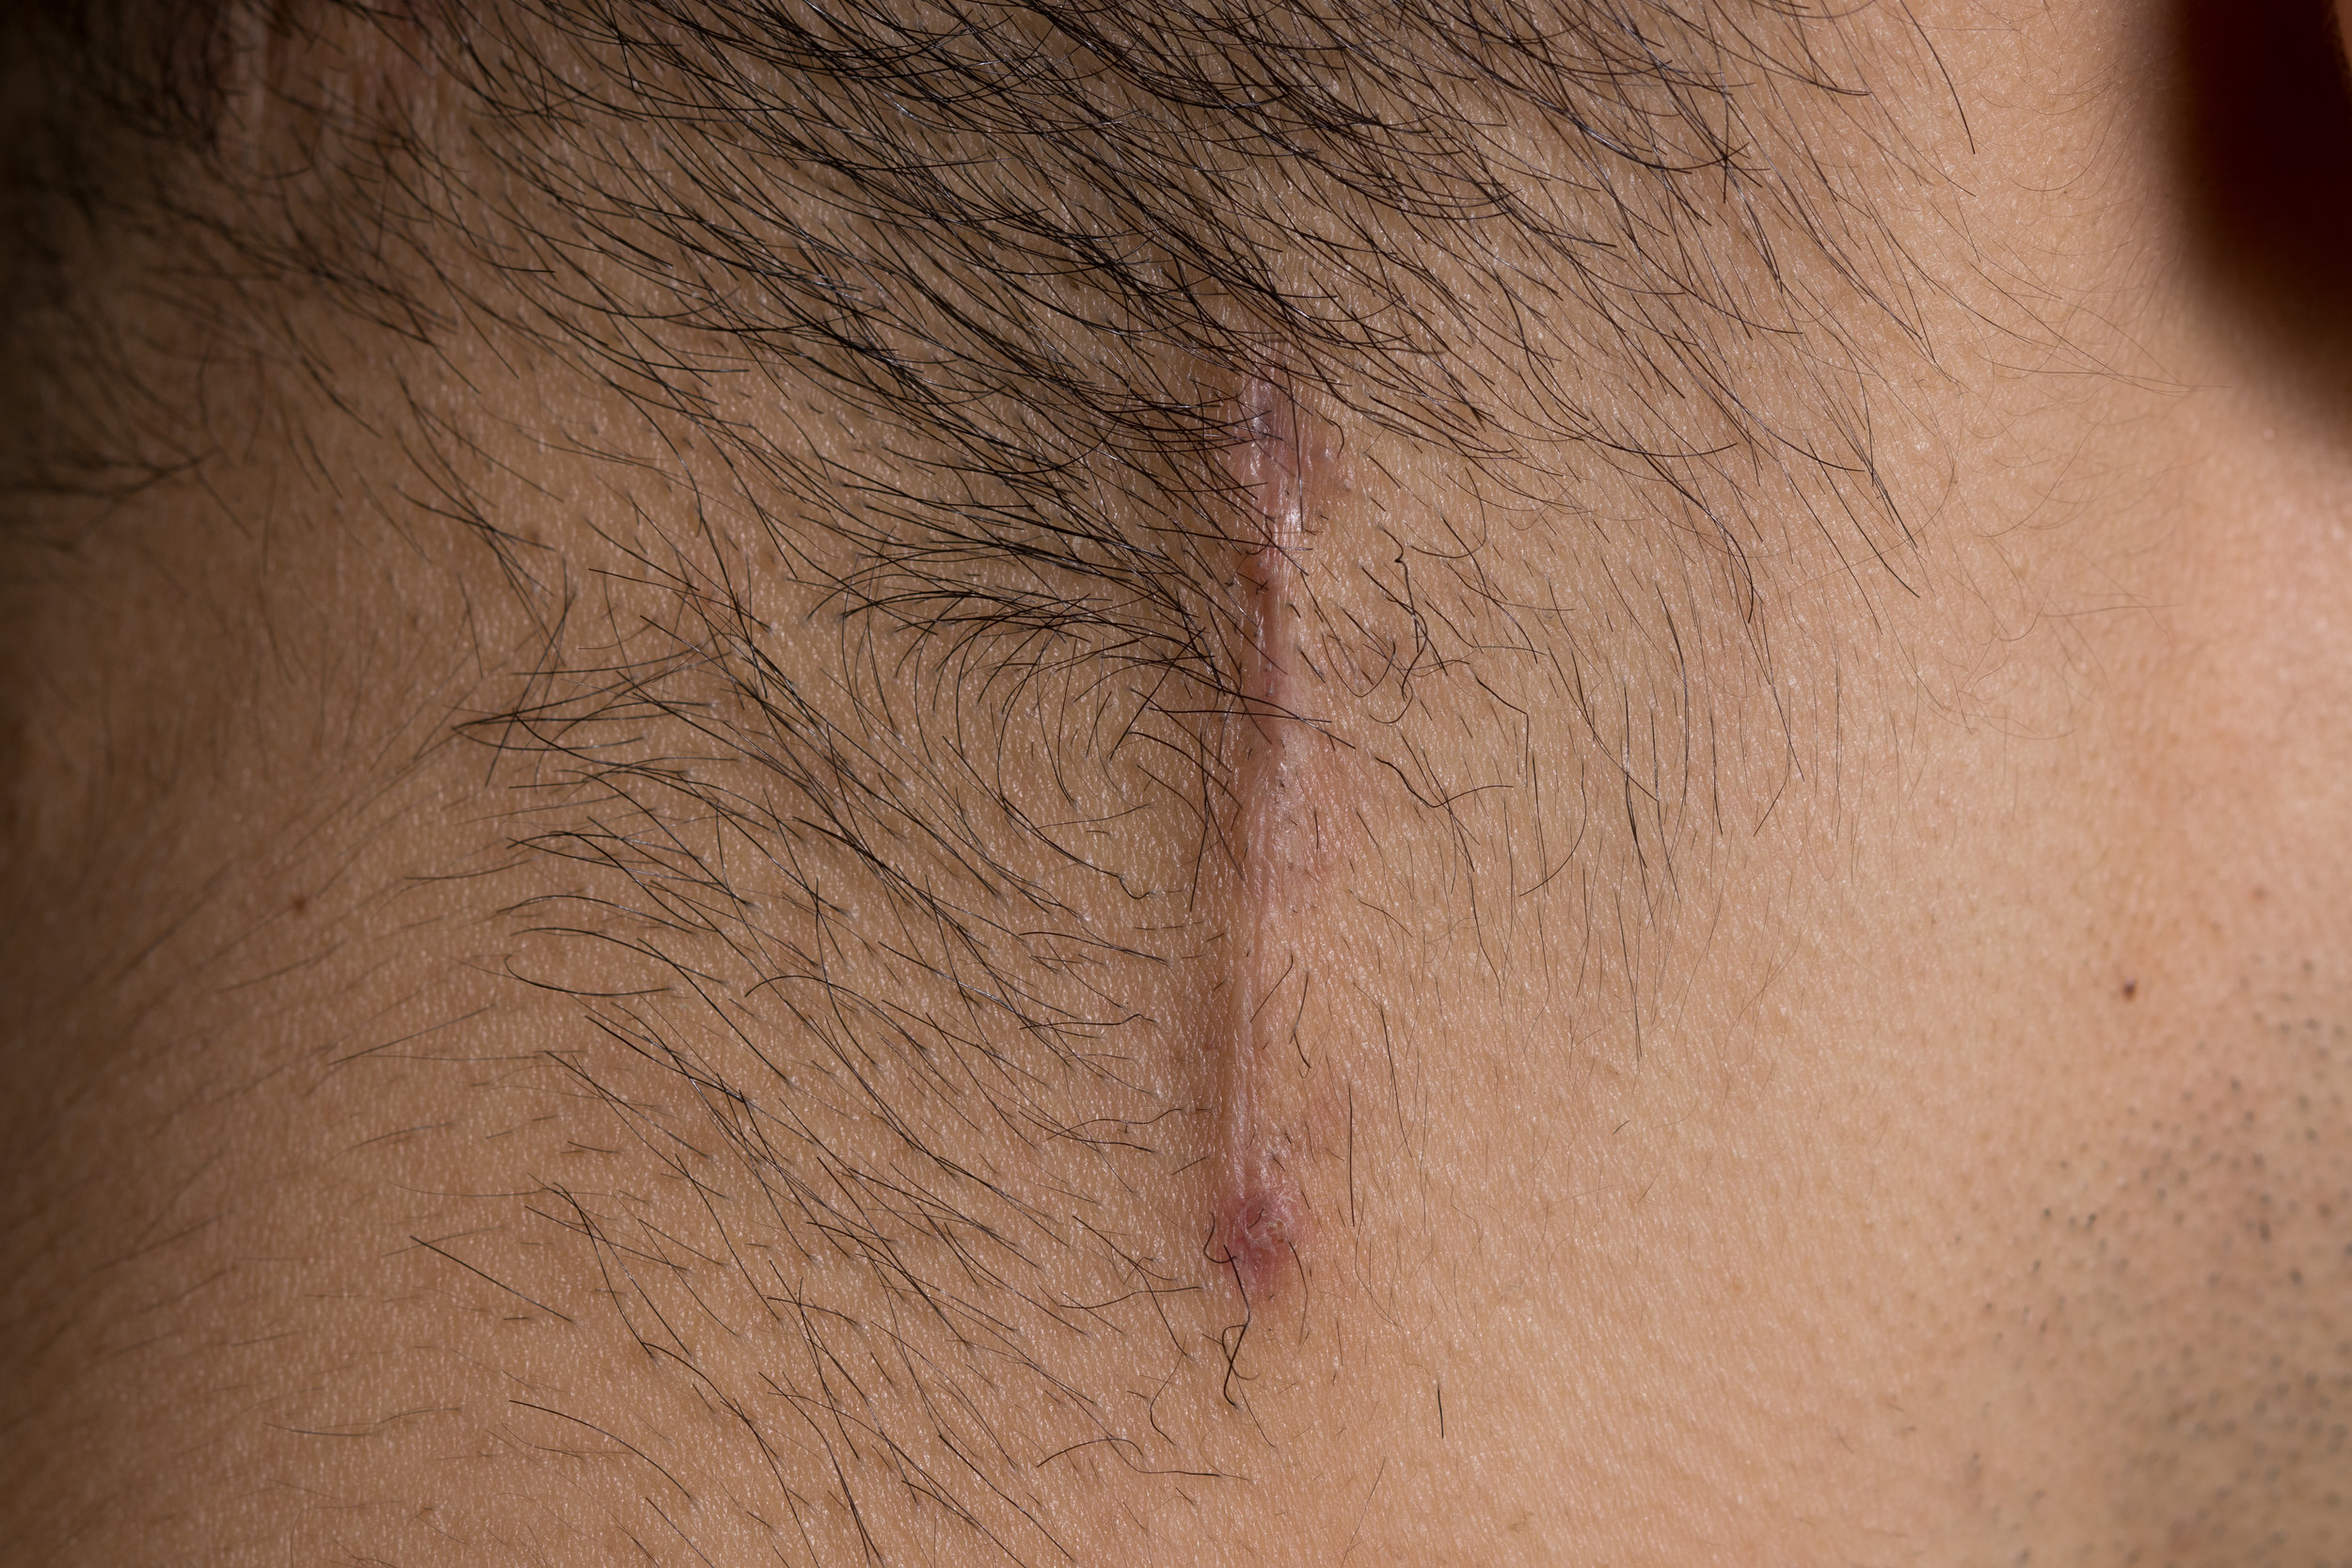 Incision for right lesser occipital nerve, 24 days post-op